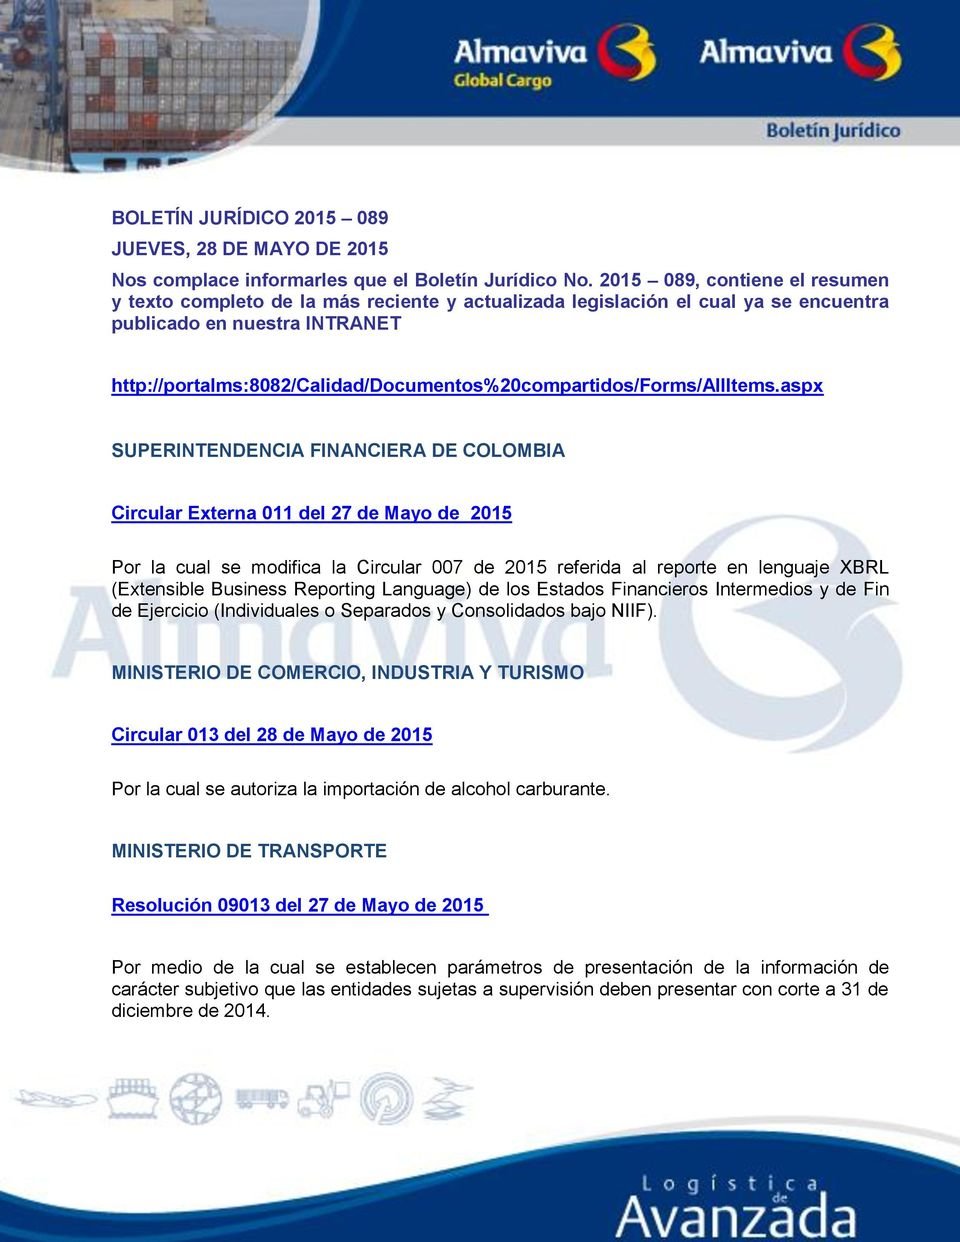 http://portalms:8082/calidad/documentos%20compartidos/forms/allitems.